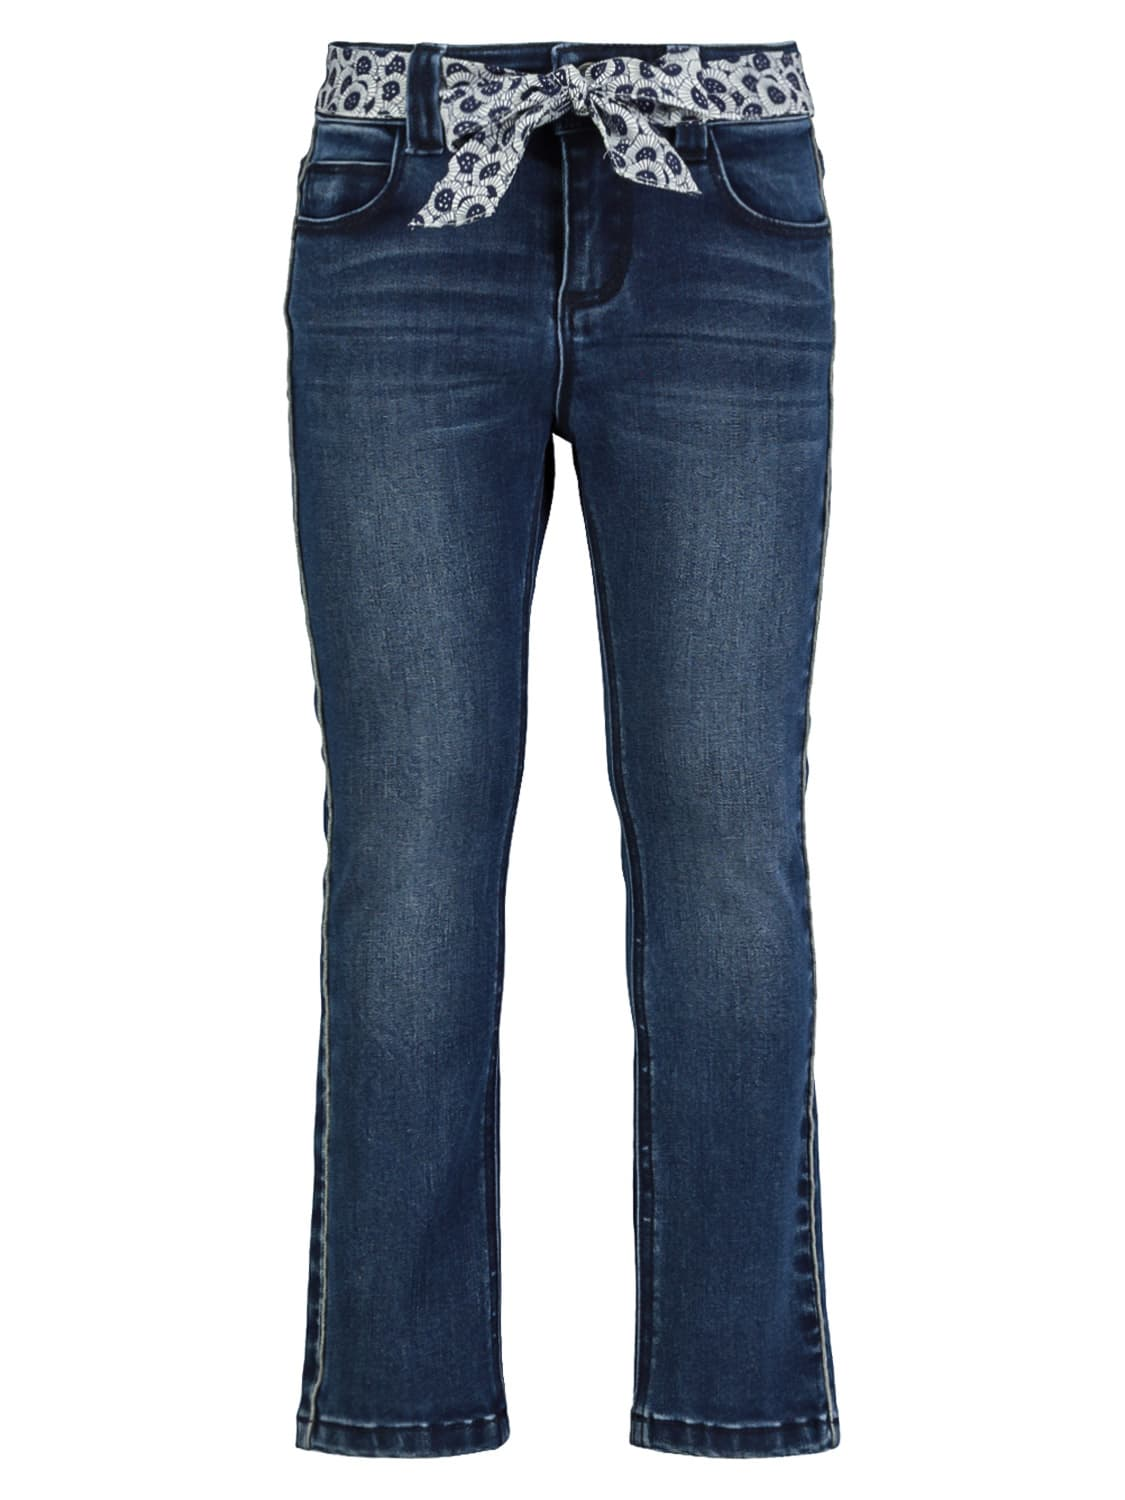 Ikks KIDS JEANS FOR GIRLS